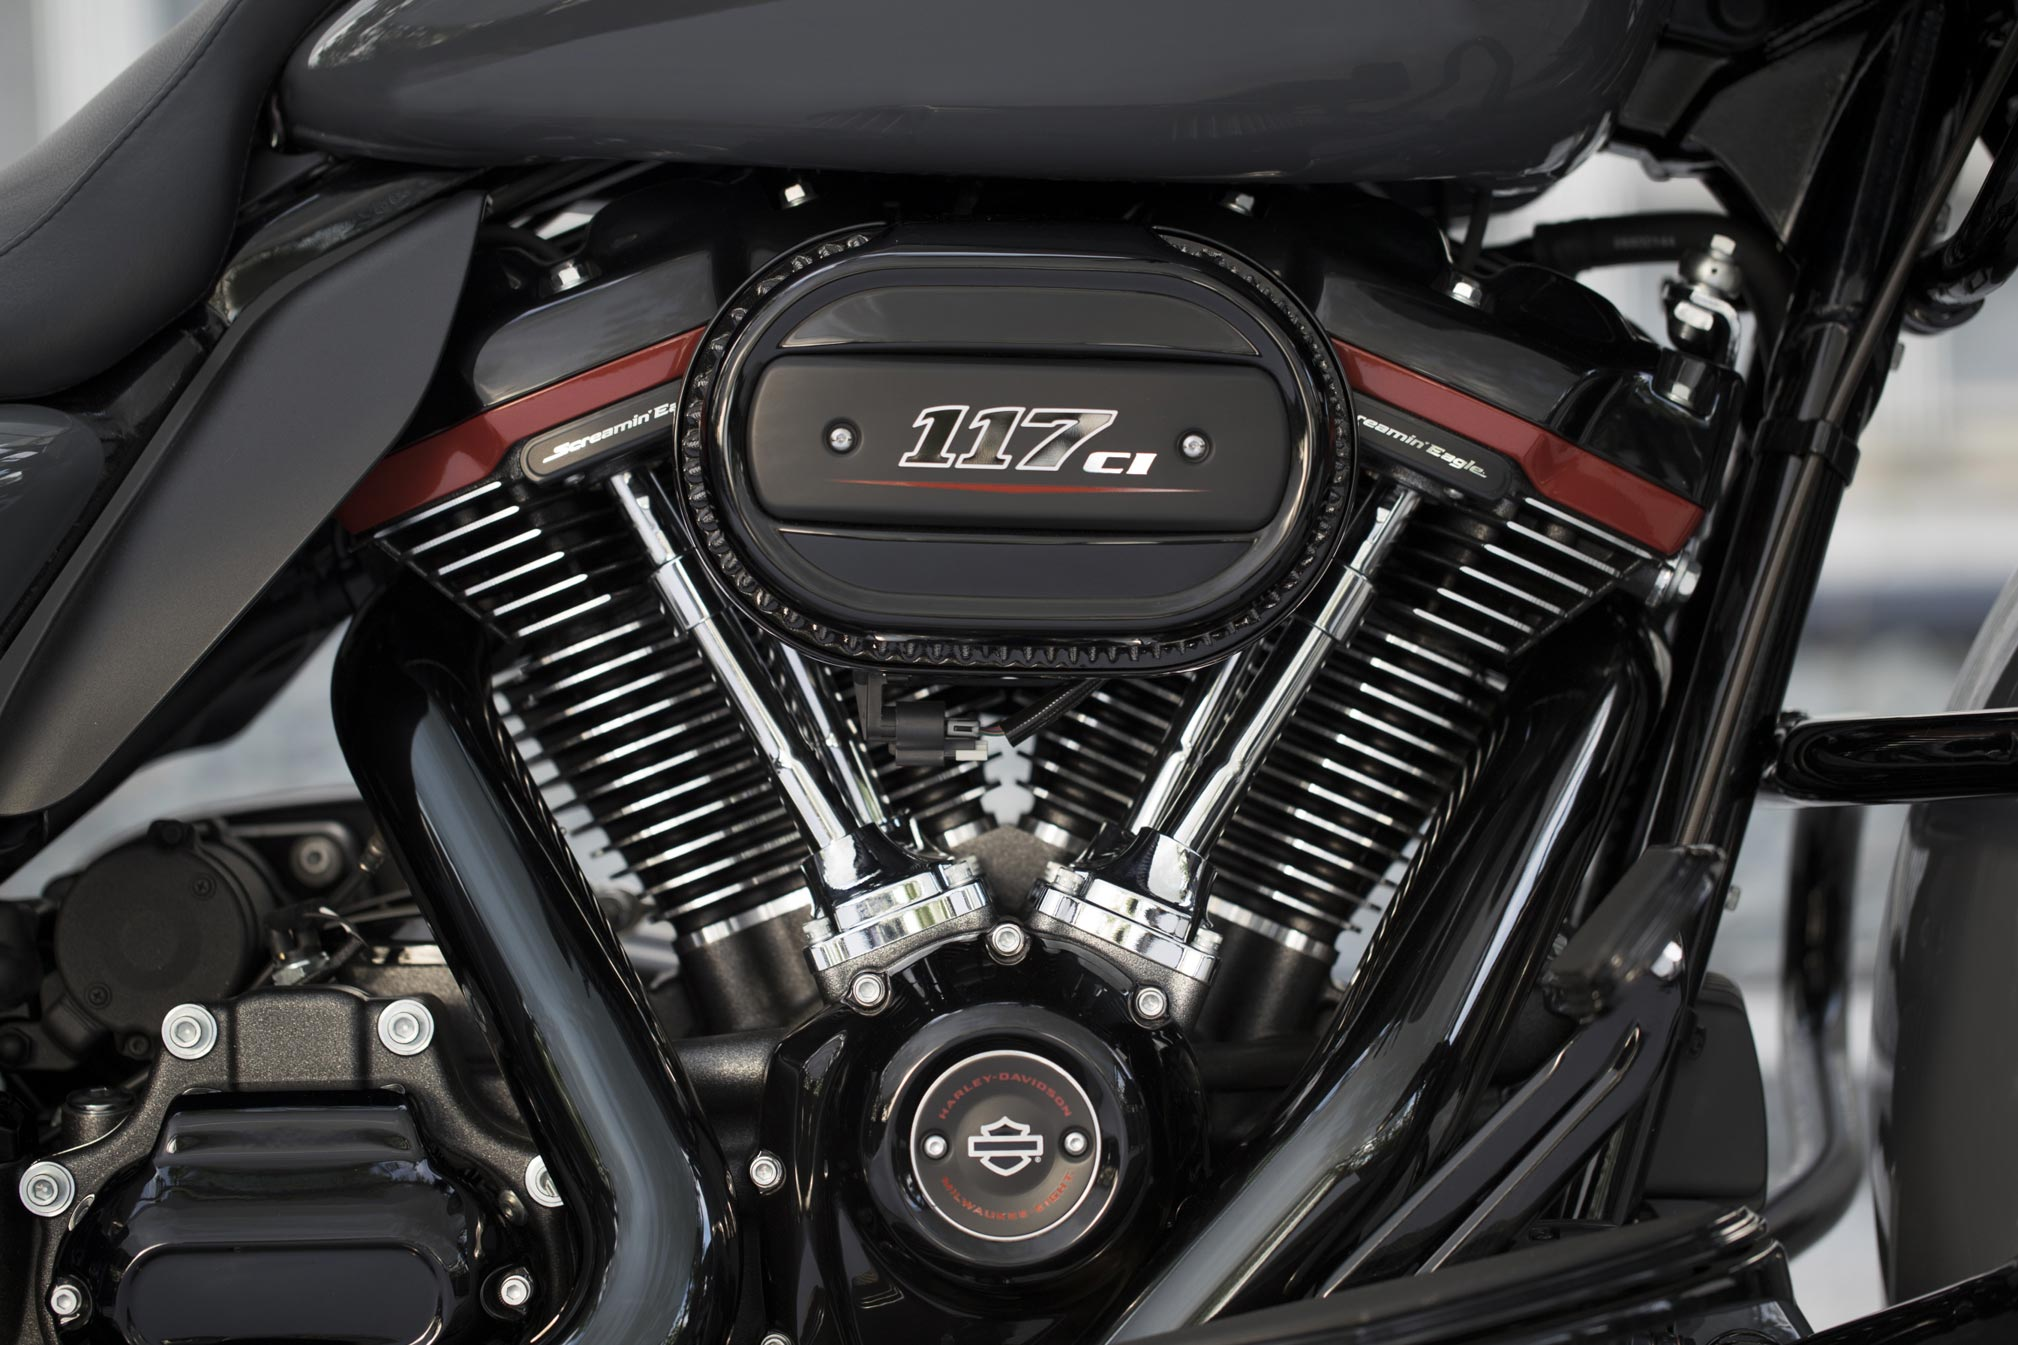 2018 Harley Davidson Milwaukee Eight 117 Engine Review